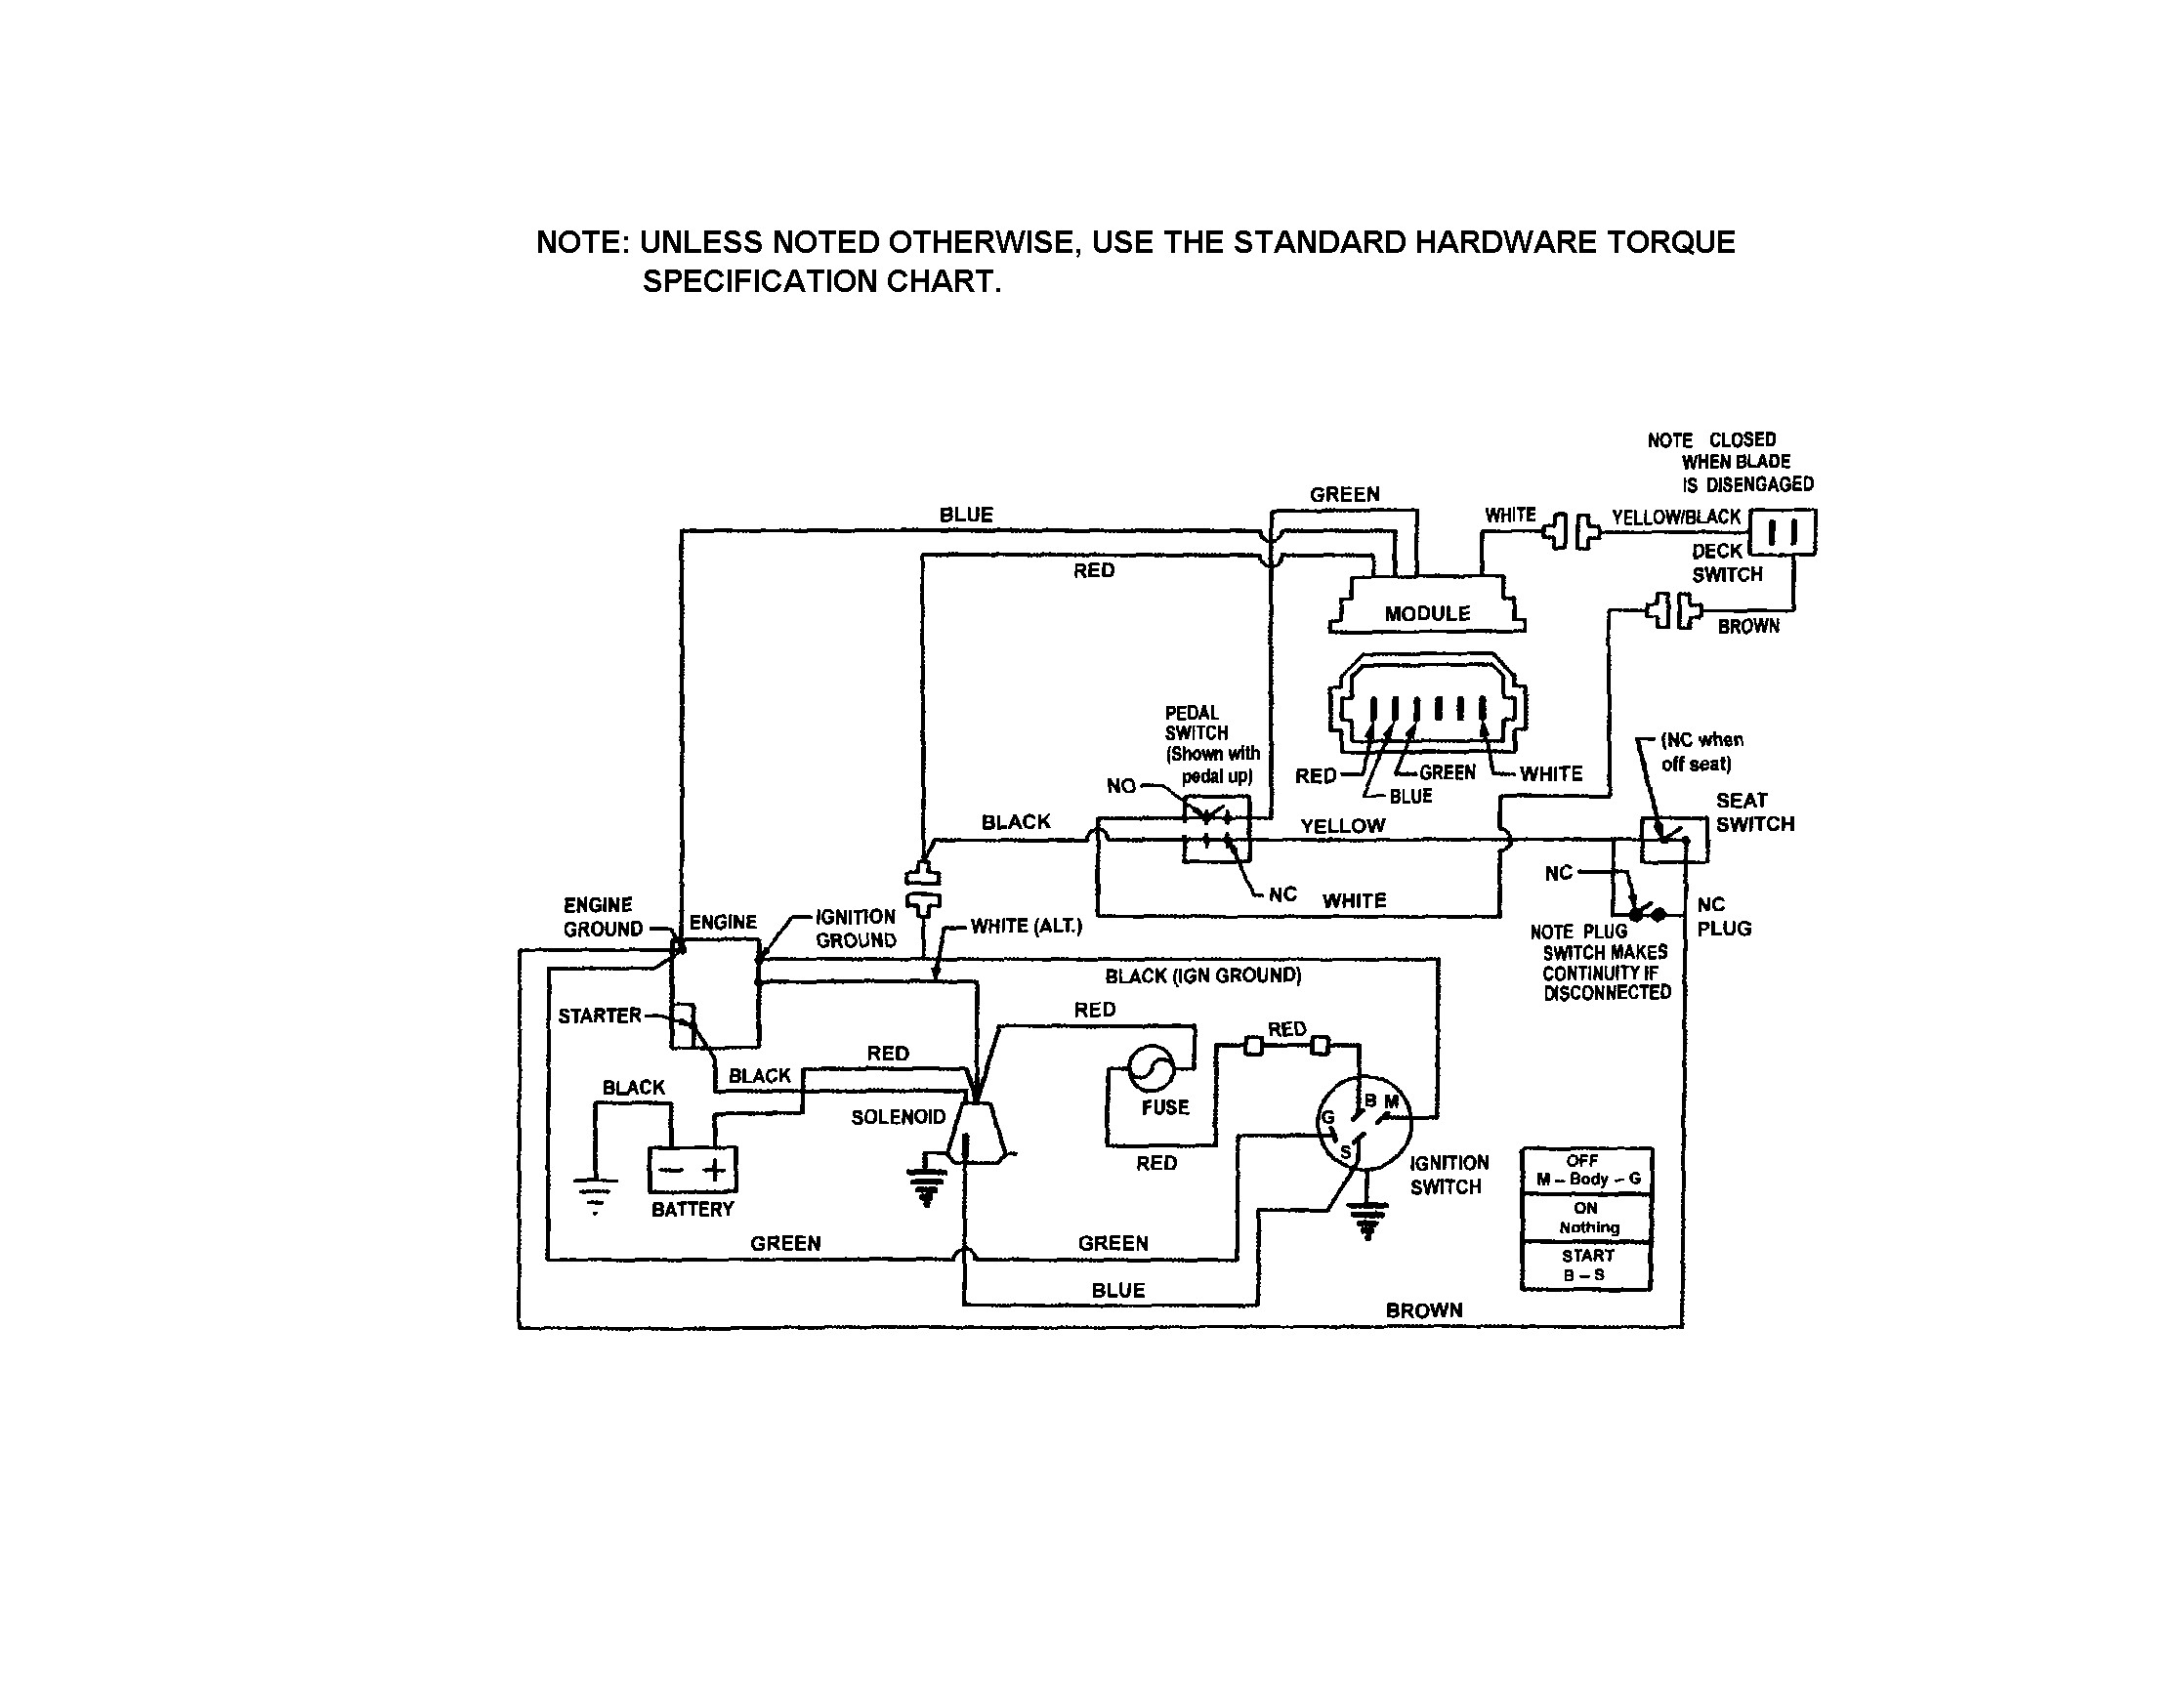 Wiring Diagram Briggs And Stratton 12.5 Hp from annawiringdiagram.com